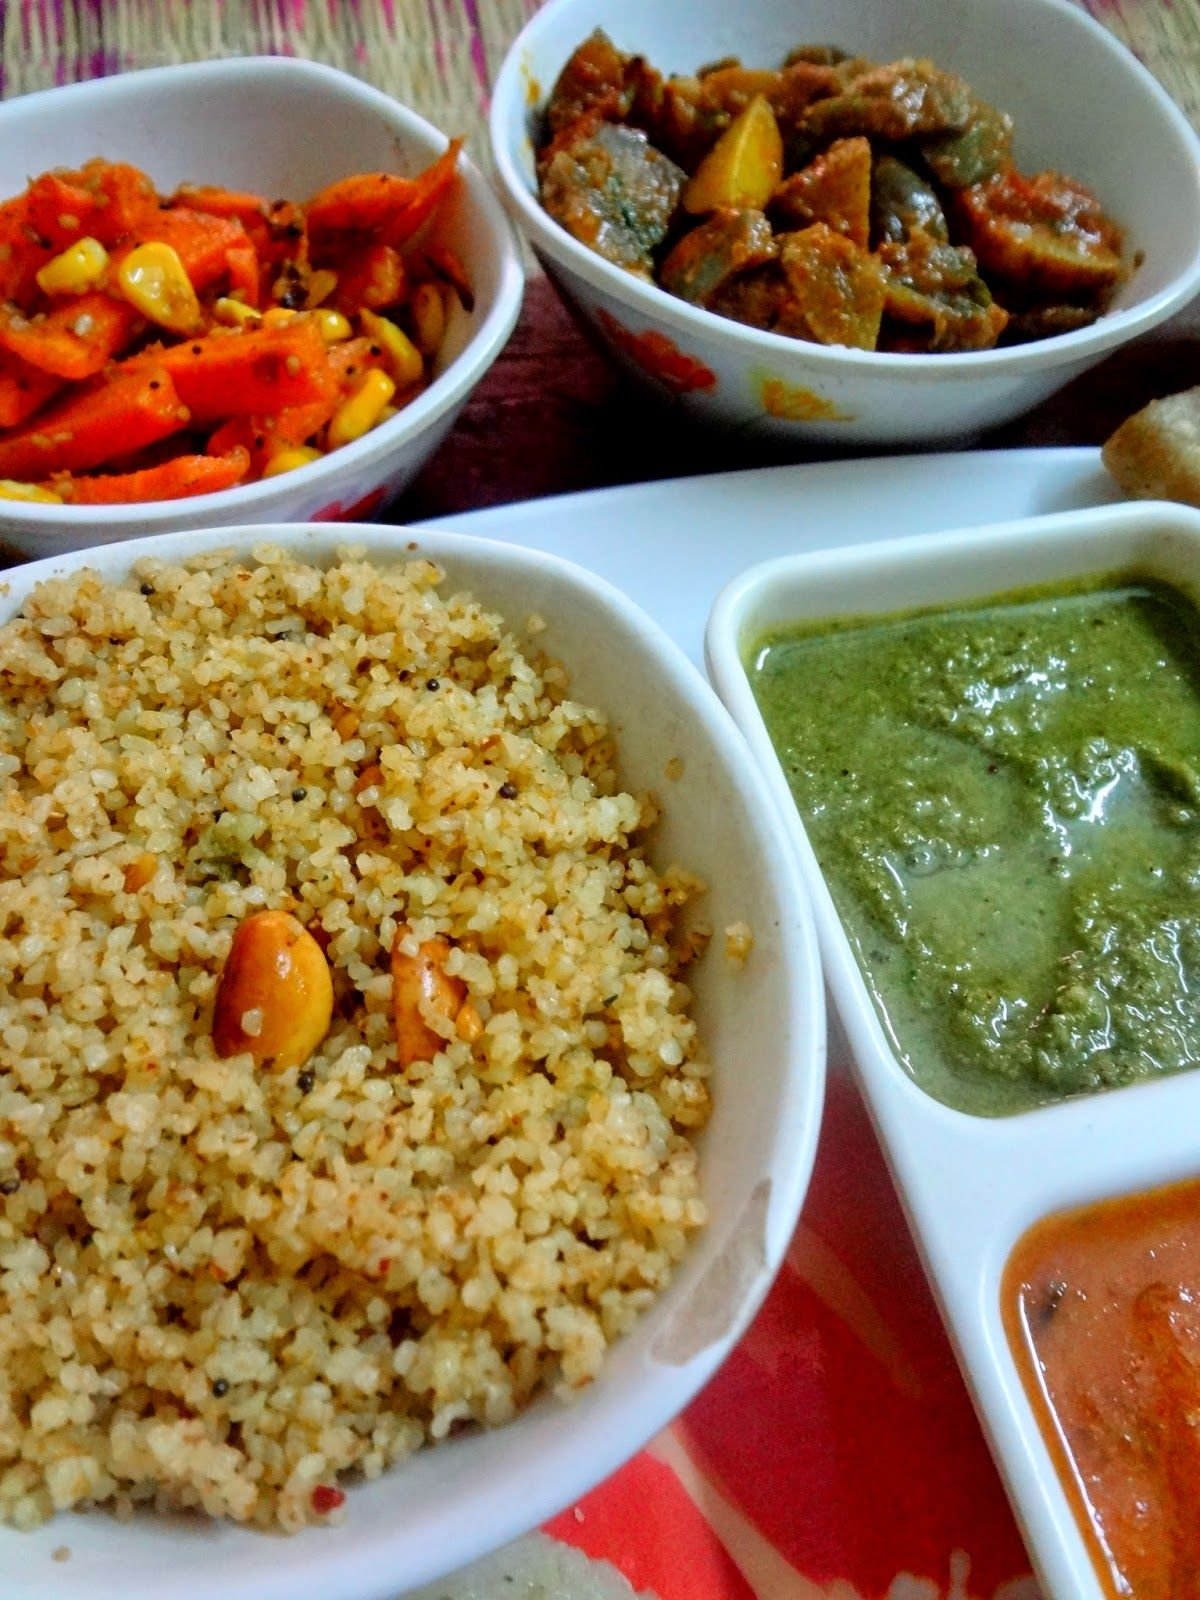 Tamrind foxtail millet thinai food pinterest millet your everyday cook forumfinder Images